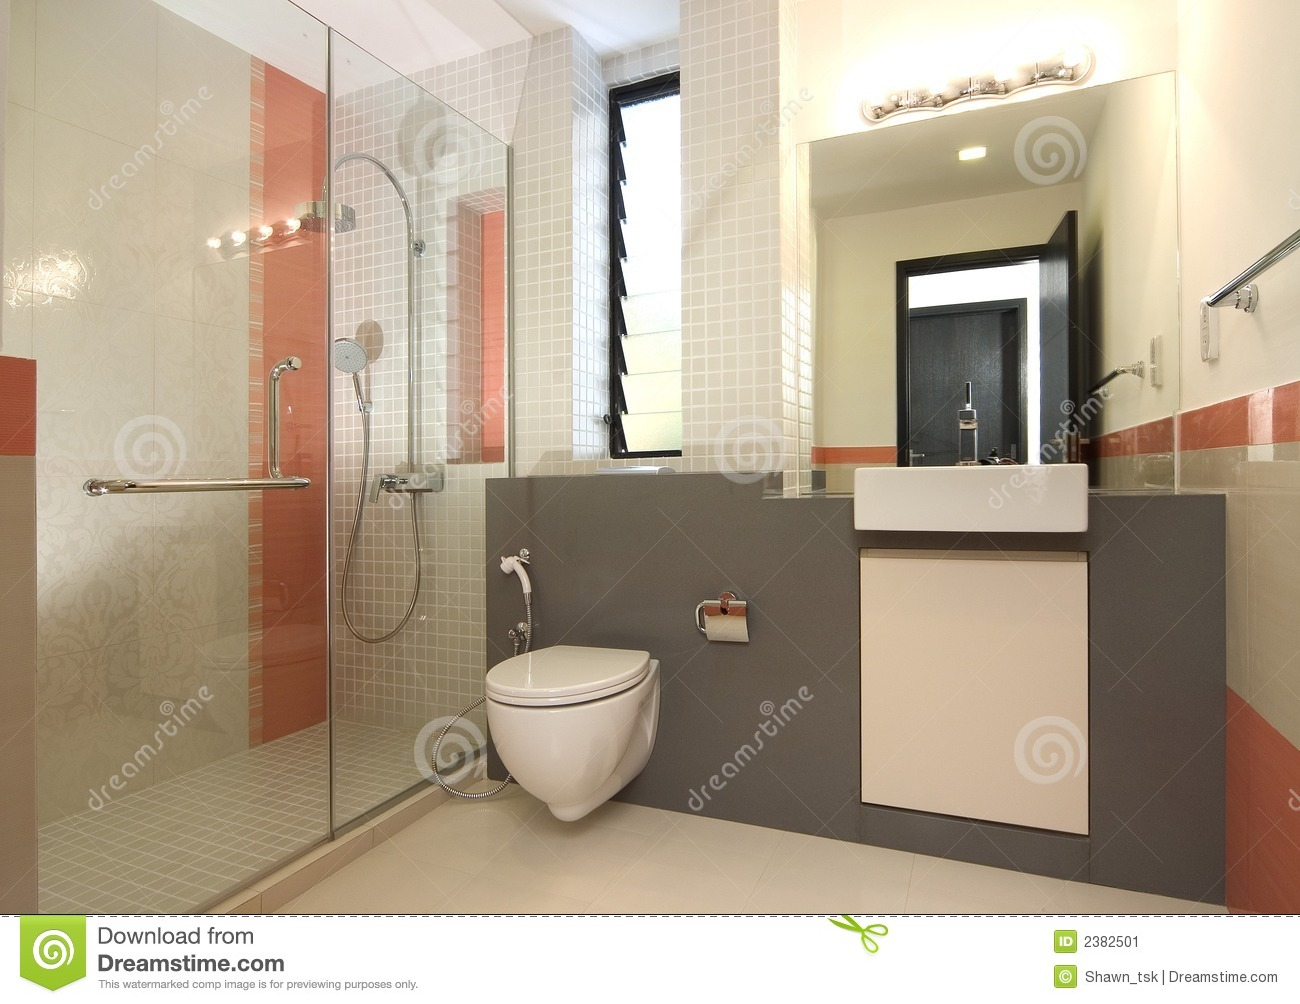 Interior Design - Bathroom Stock Image - Image: 2382501